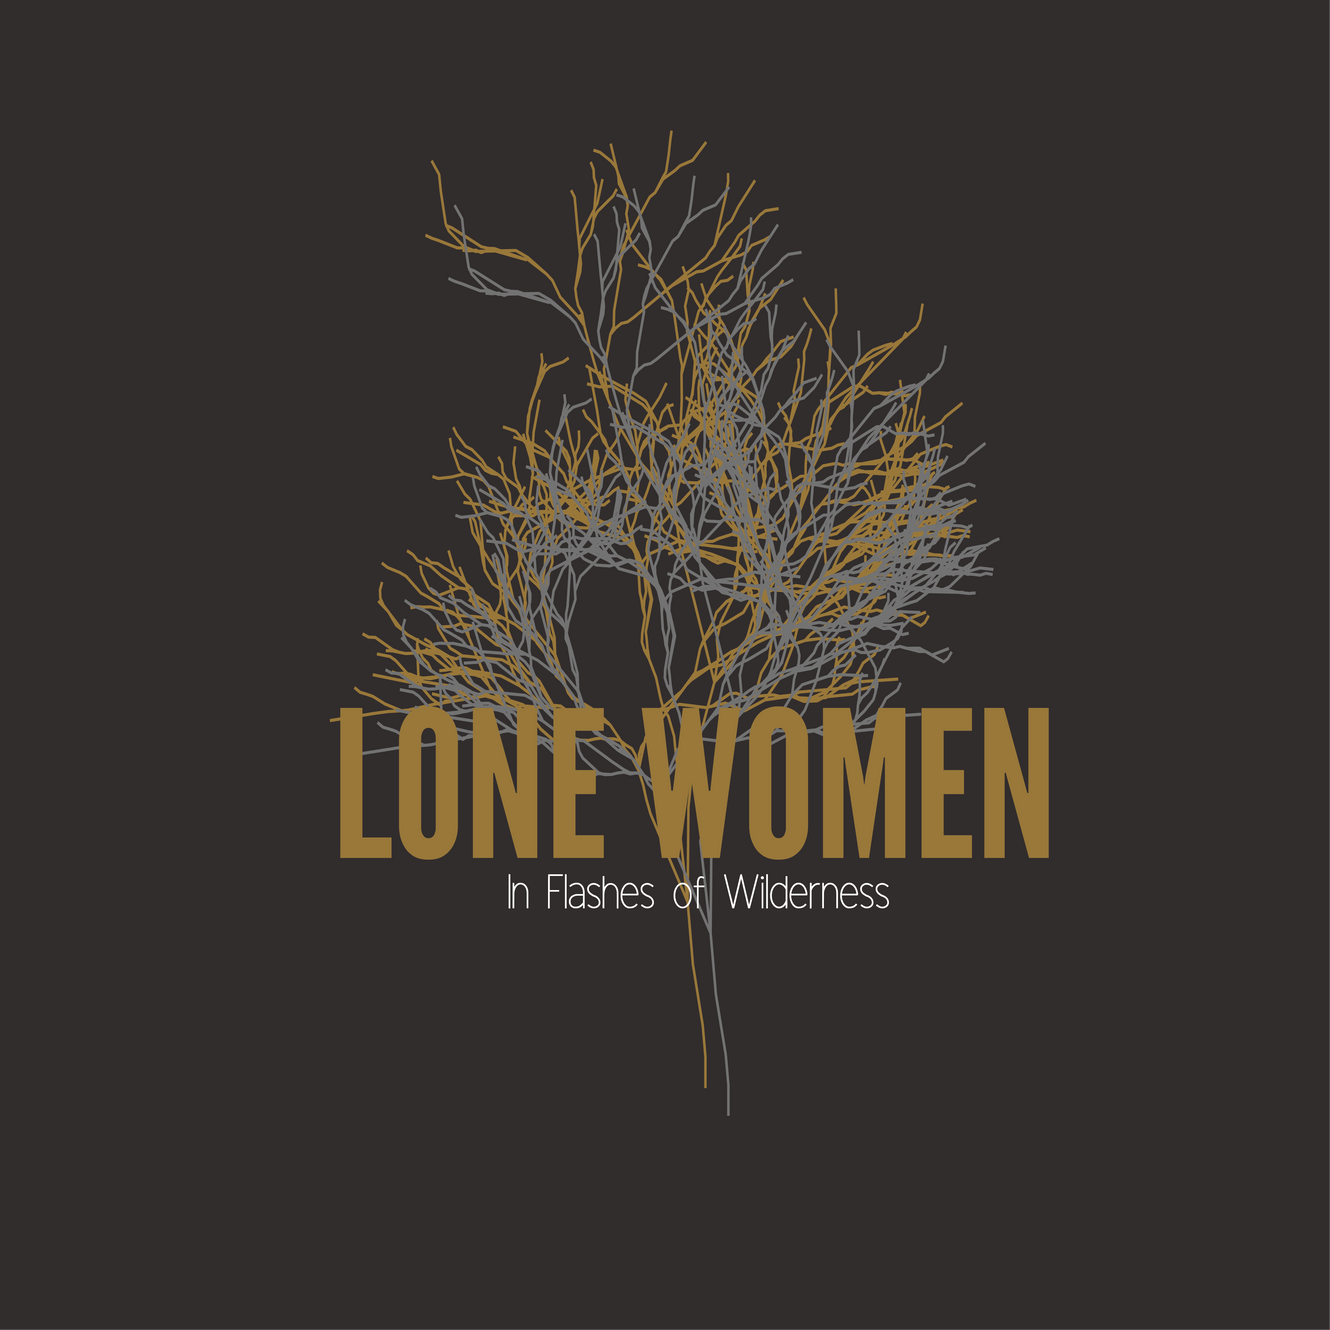 Negative Space by Louise Kenward | Lone Women in Flashes of